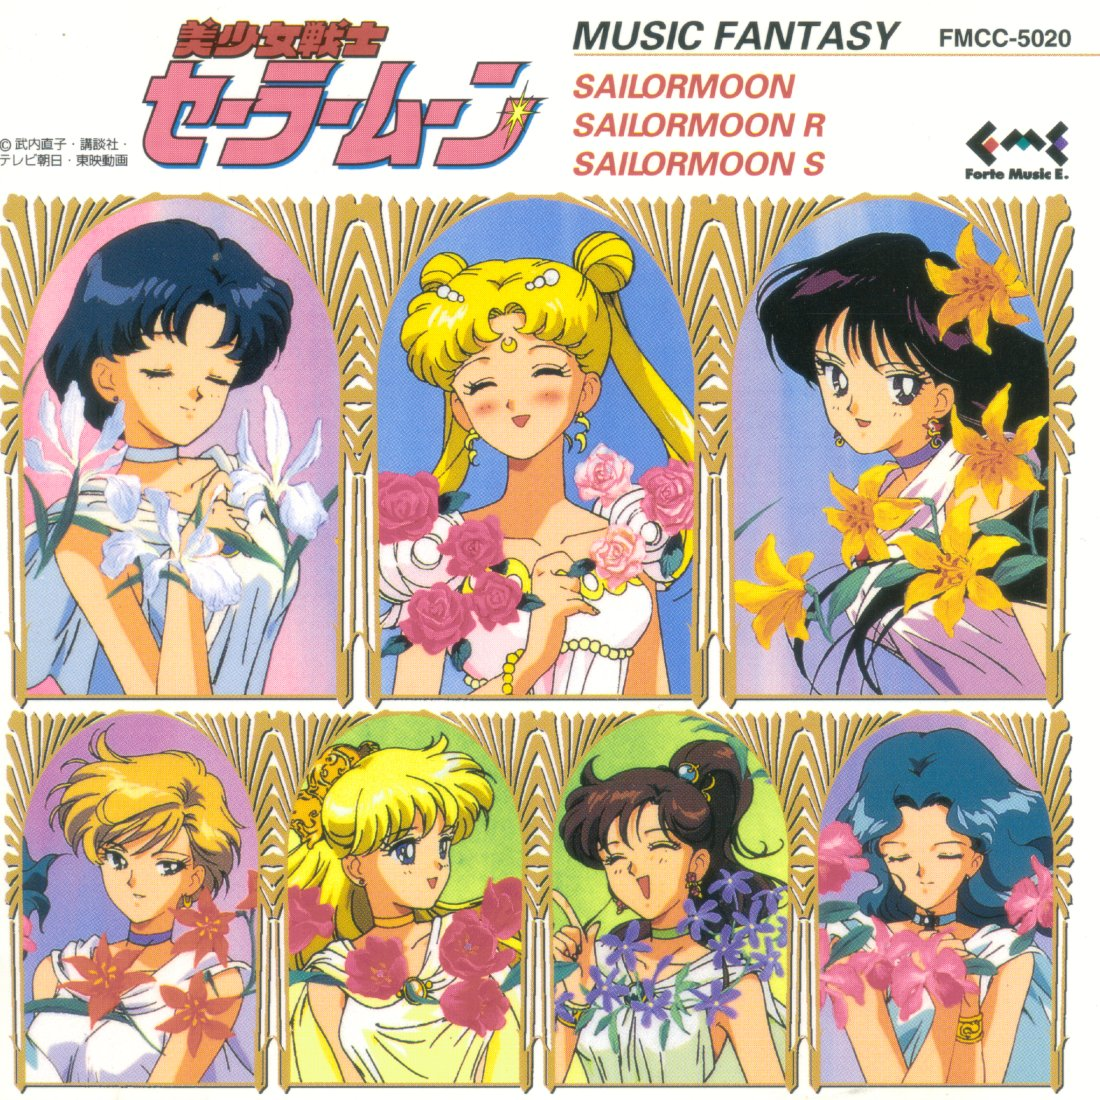 Sailor Moon Music Fantasy